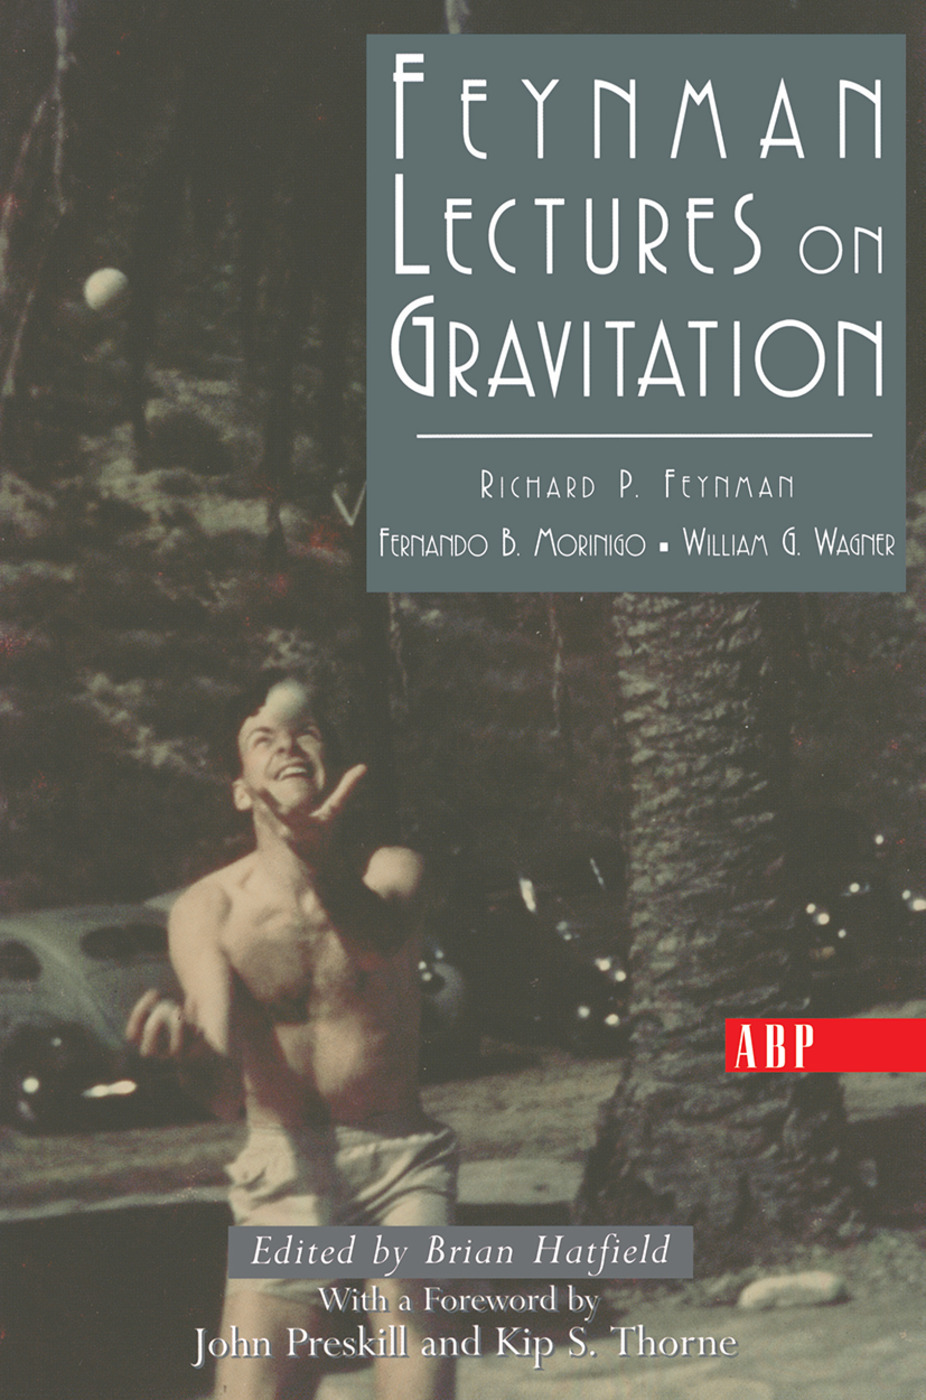 Feynman Lectures On Gravitation book cover